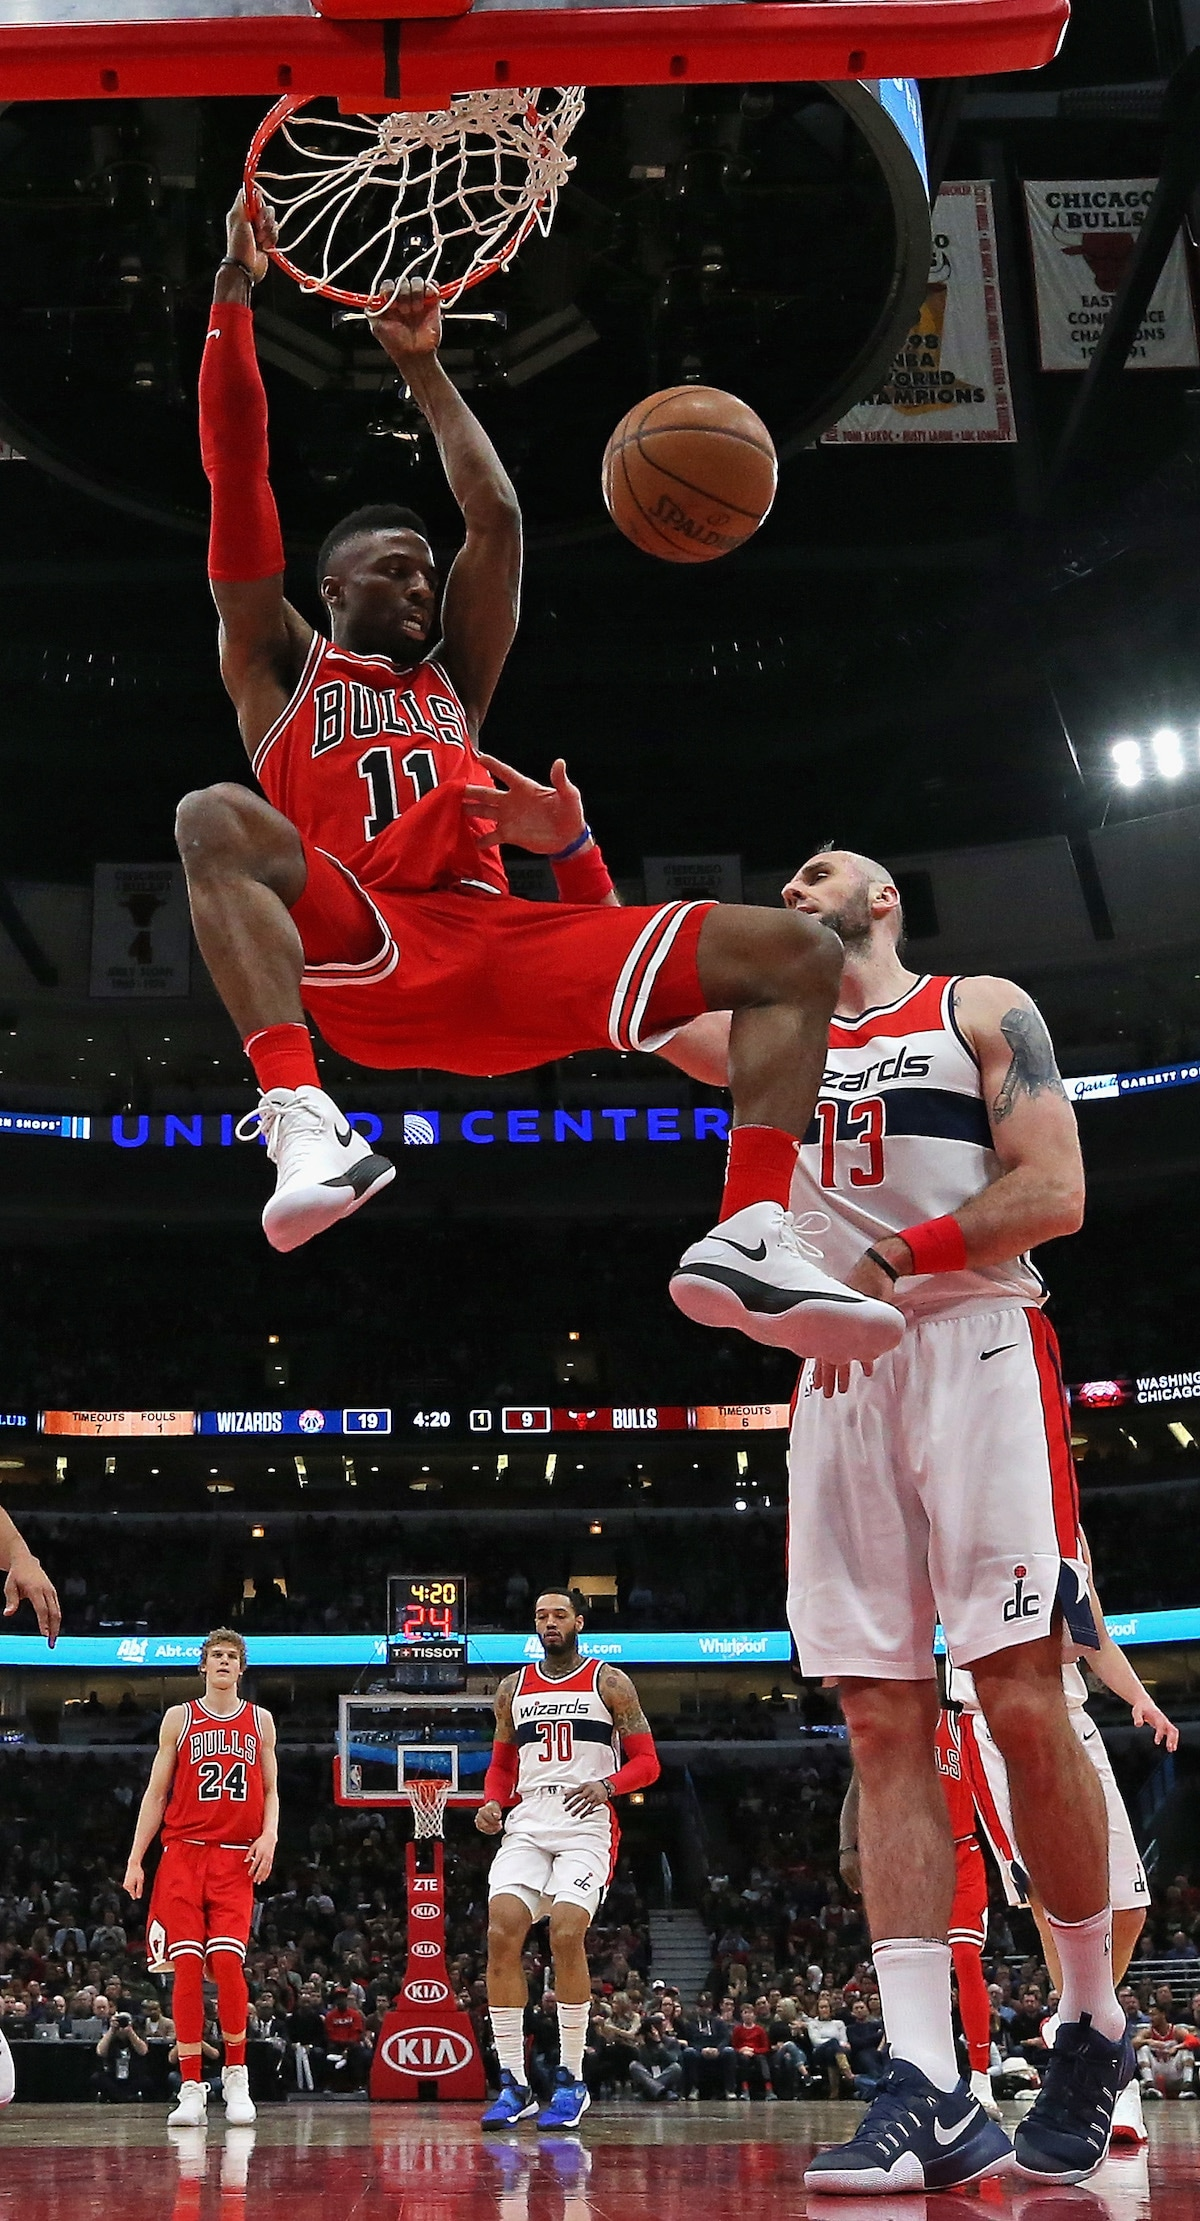 David Nwaba of the Chicago Bulls dunks the ball into the hoop.